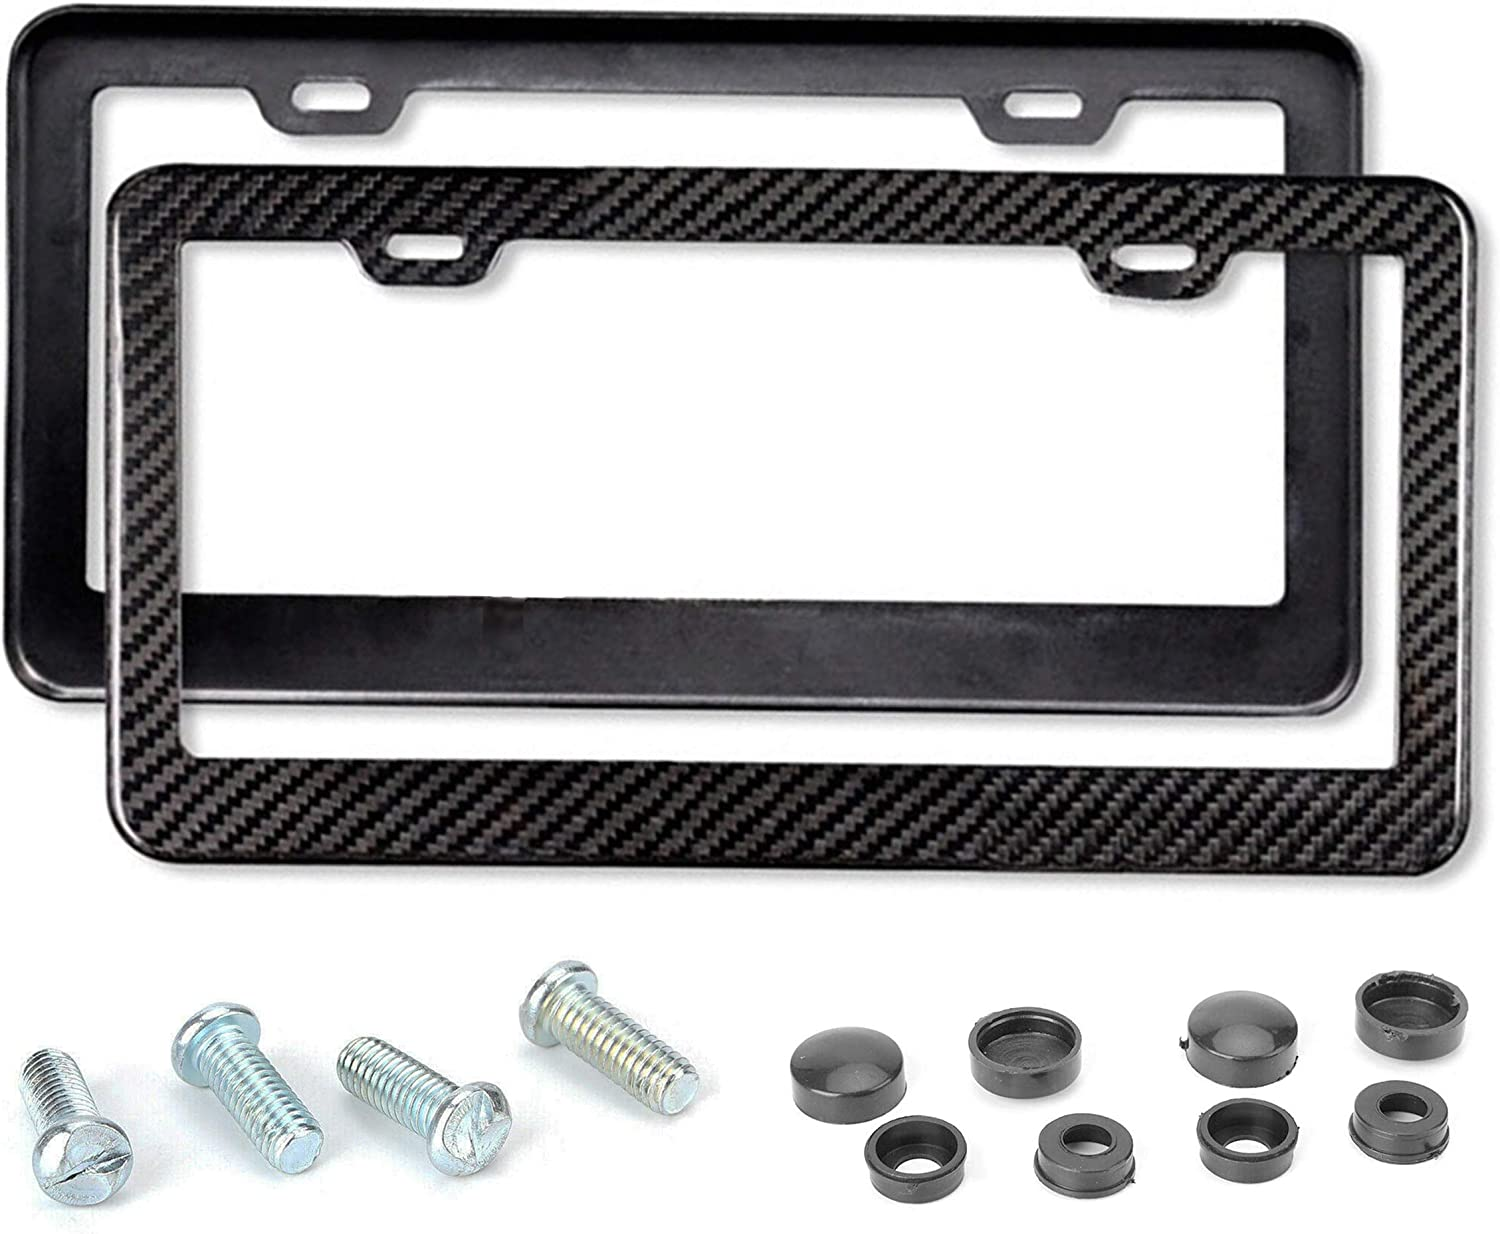 Mega Racer License Plate Frame Carbon Fiber - Carbon Frame 2 Pack Stainless Steel Printed Carbon Fiber License Plate Frame Front and Rear Holder with Stainless Steel Screws, Carbon Fiber License Frame